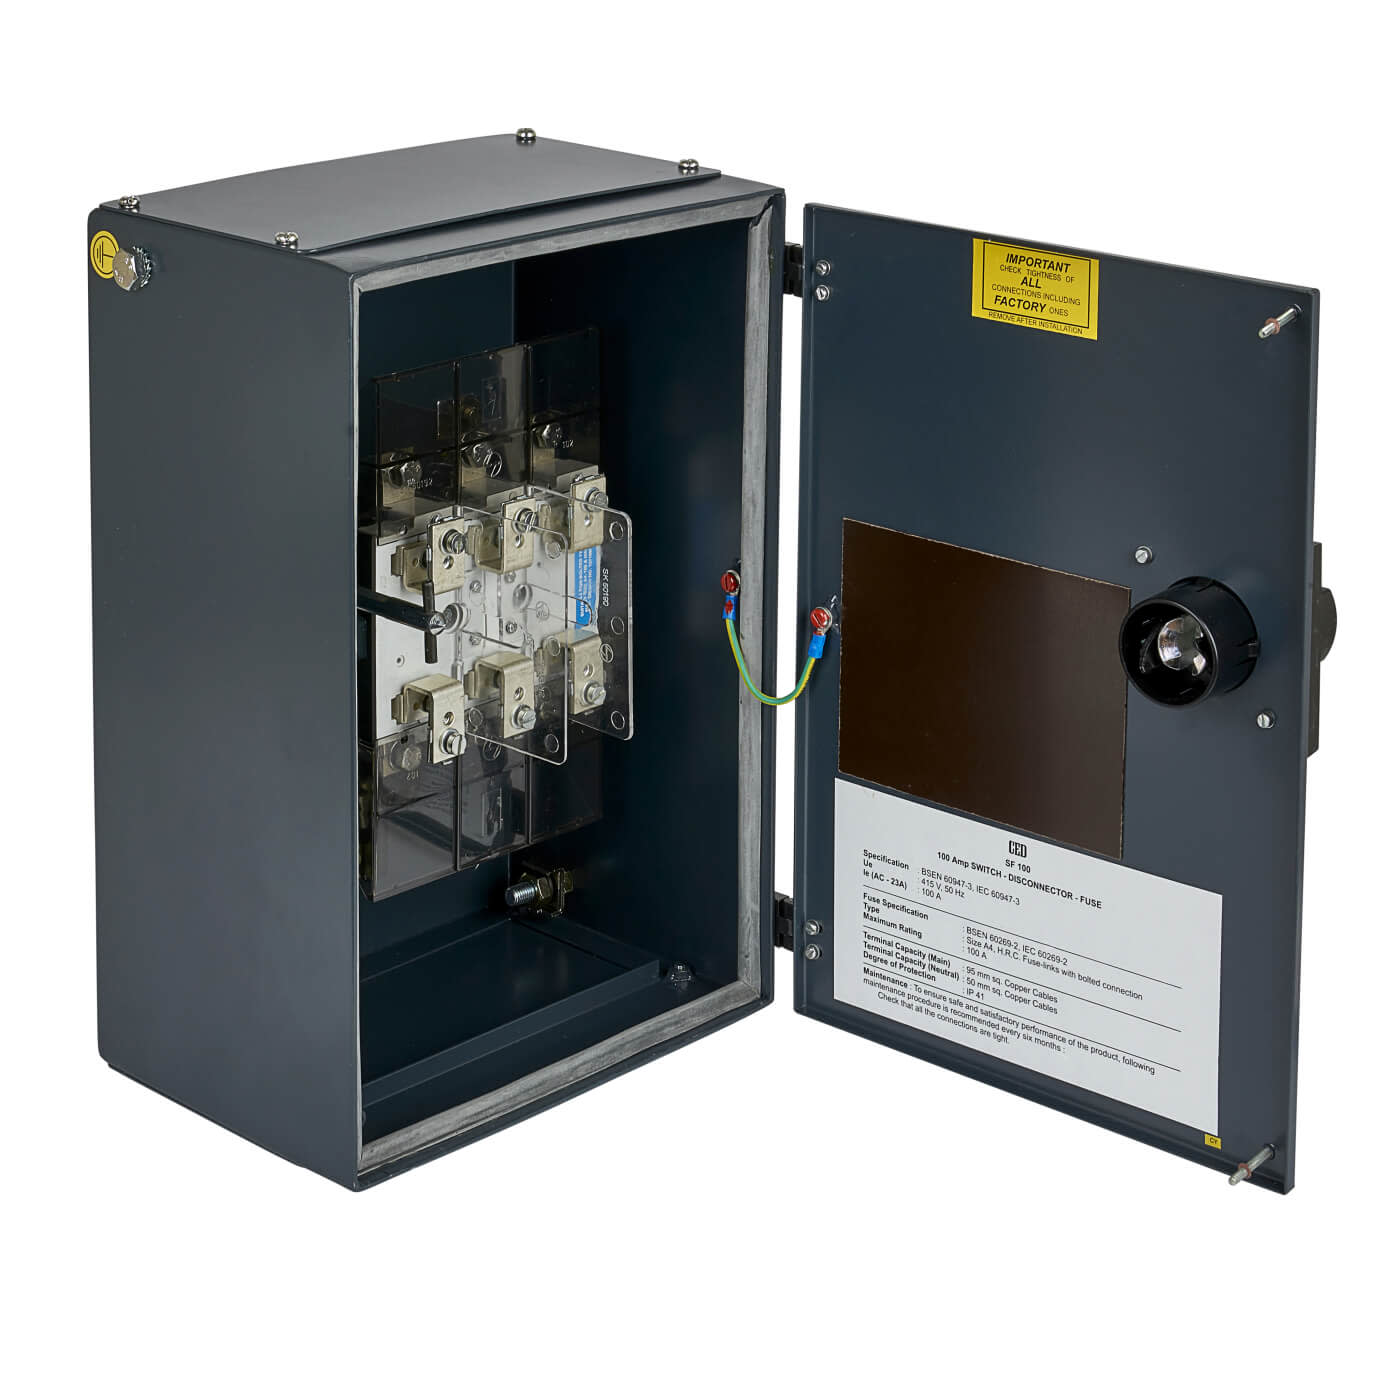 CED 100A 3 Phase Switch Fuse)